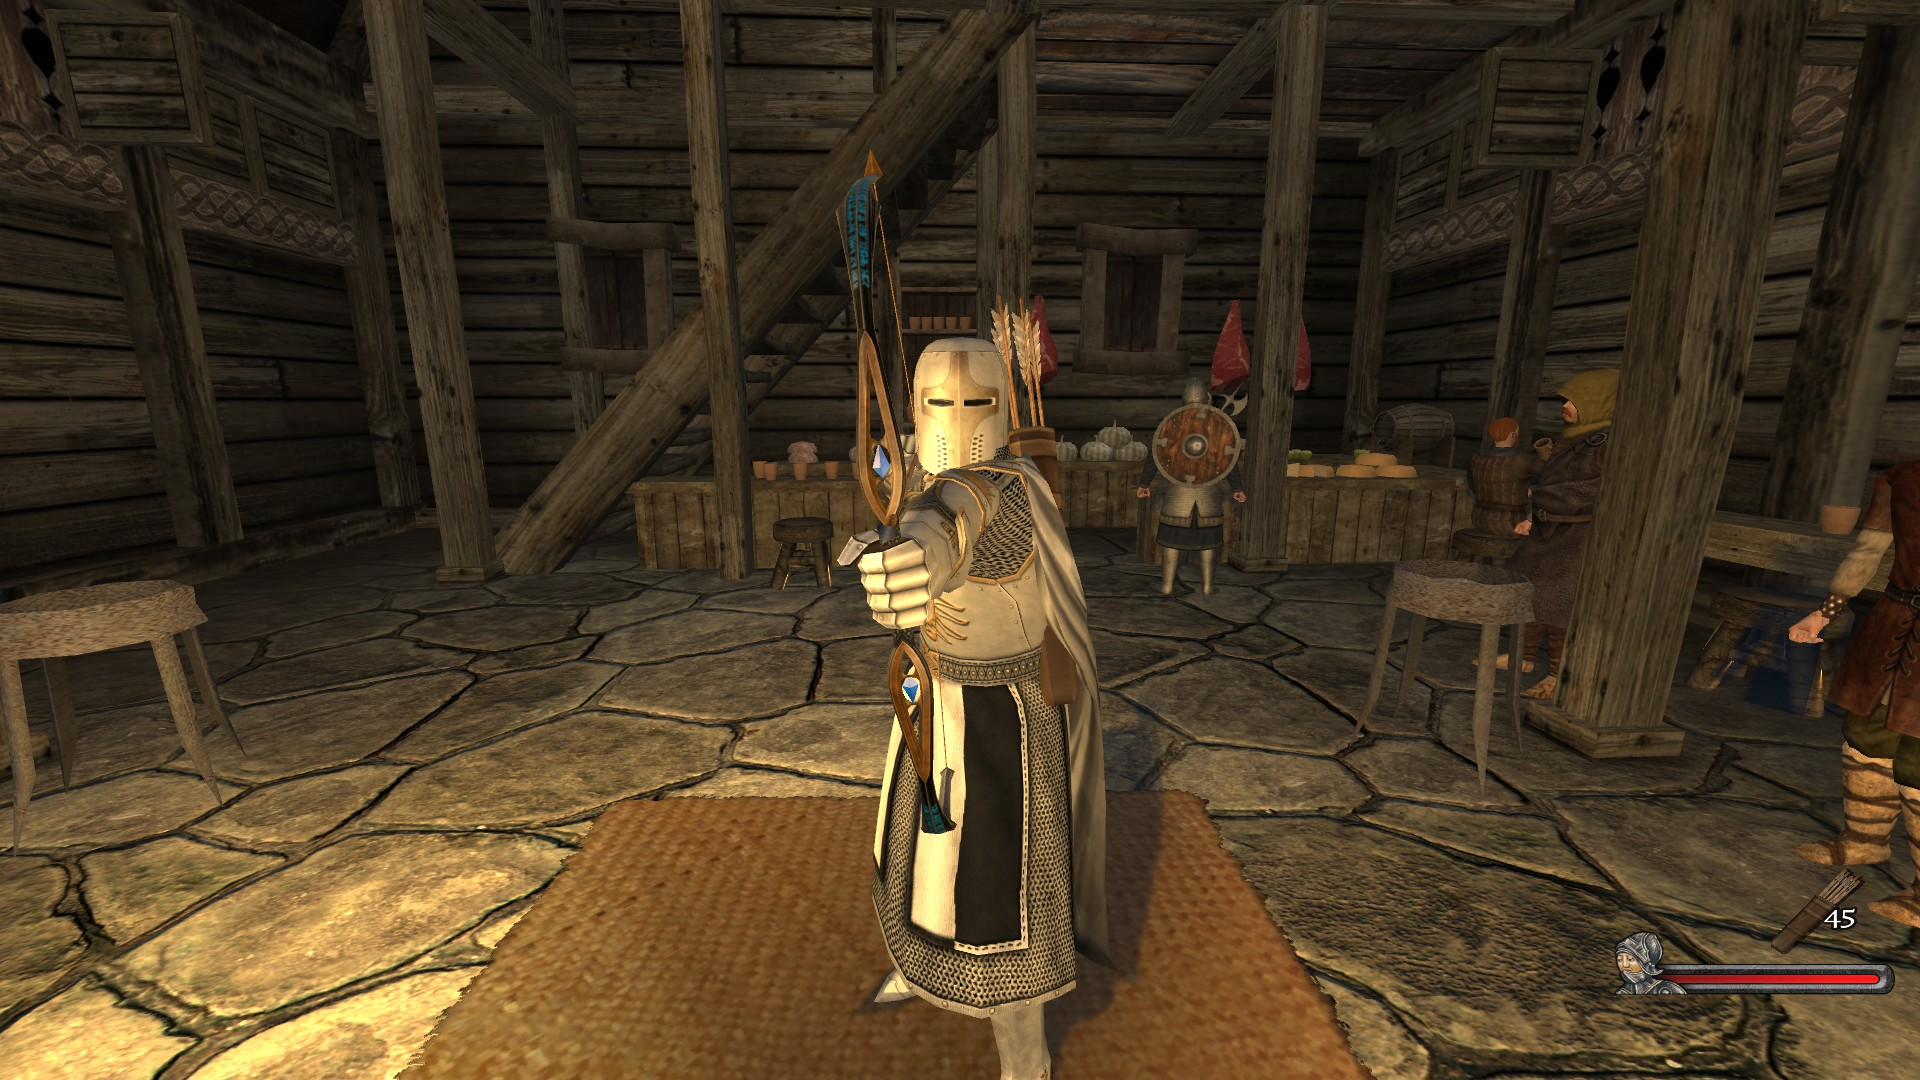 Mount and blade prophesy of pendor guide